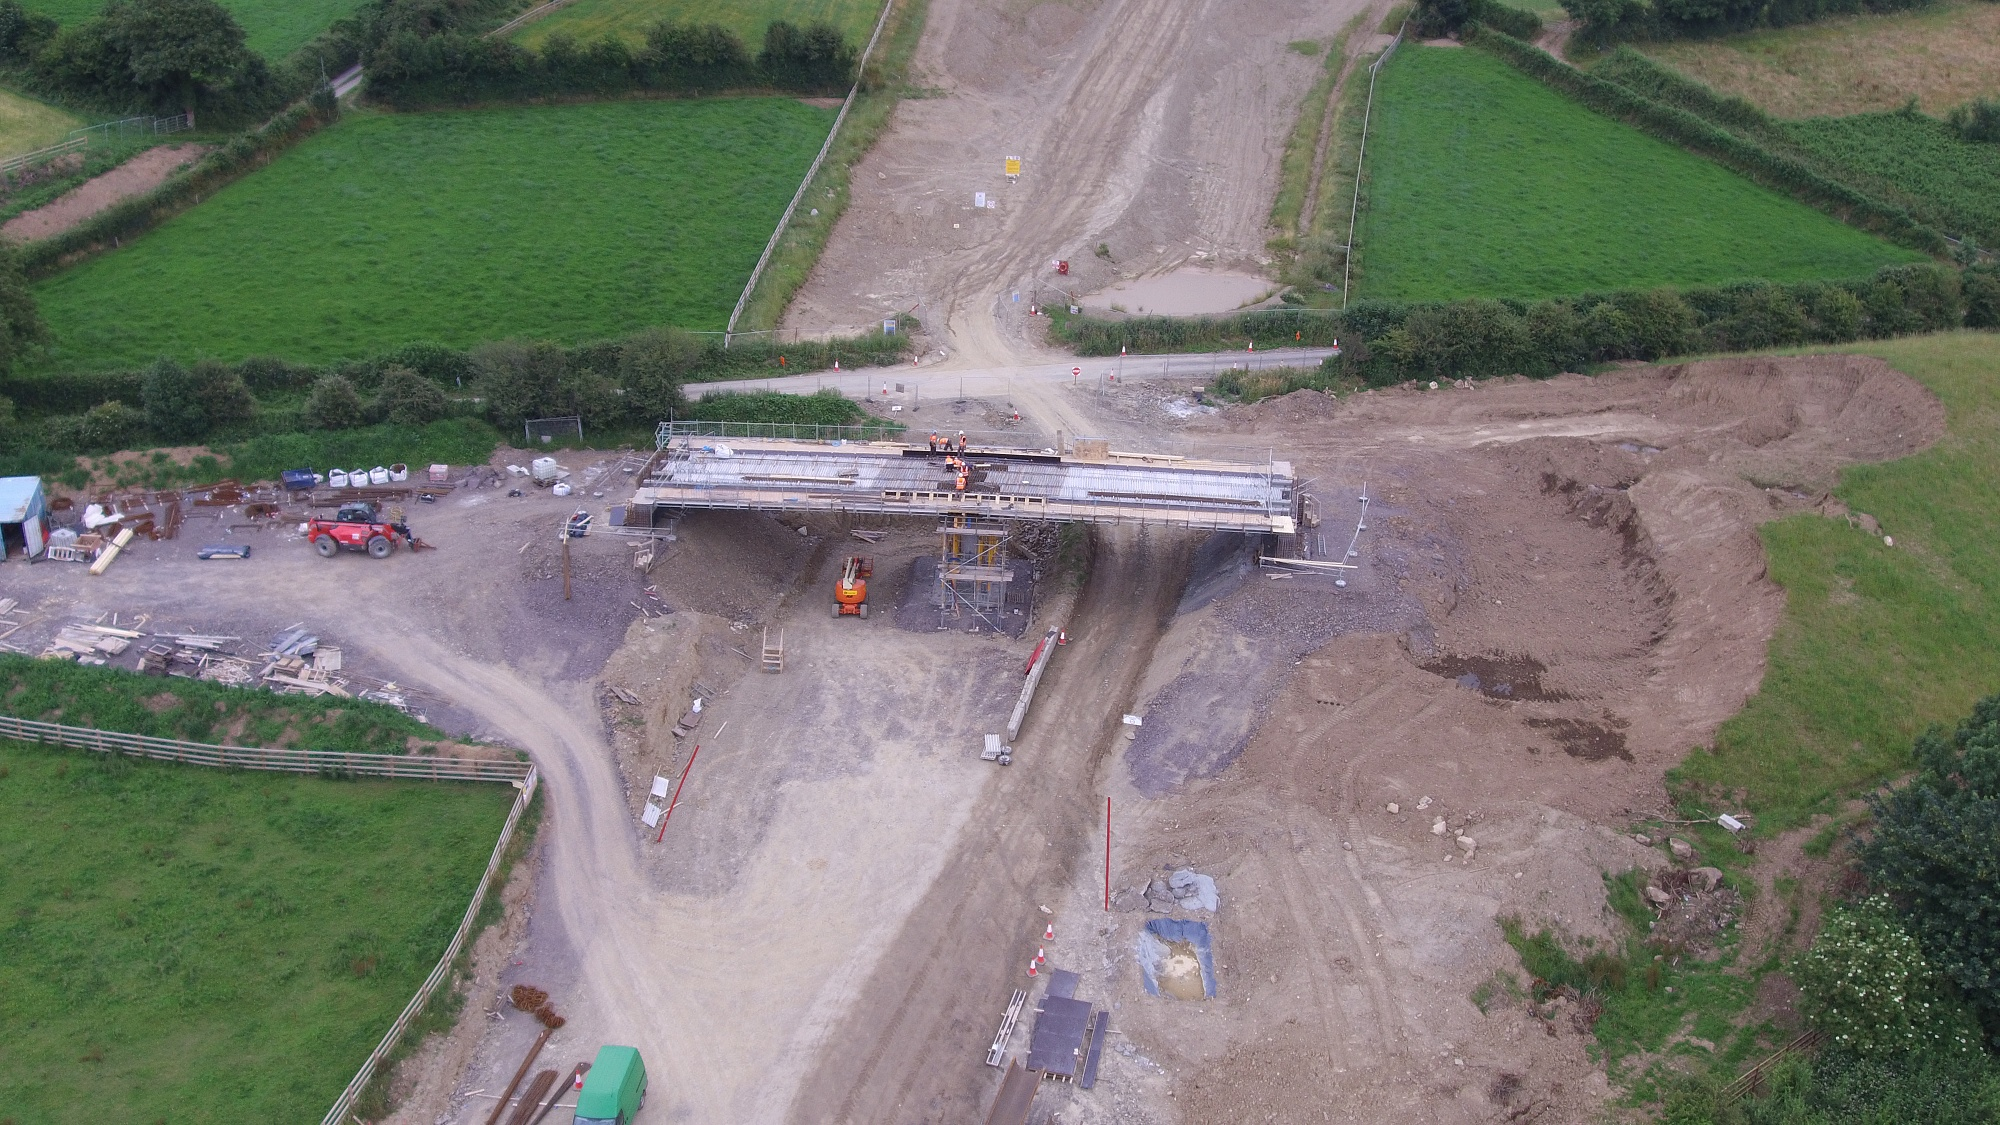 90de717c522b9 Update 27/07/2017: Pictures have been put up on the N25 New Ross website  showing progress on structures and earthworks. Of particular interest are  these: ...